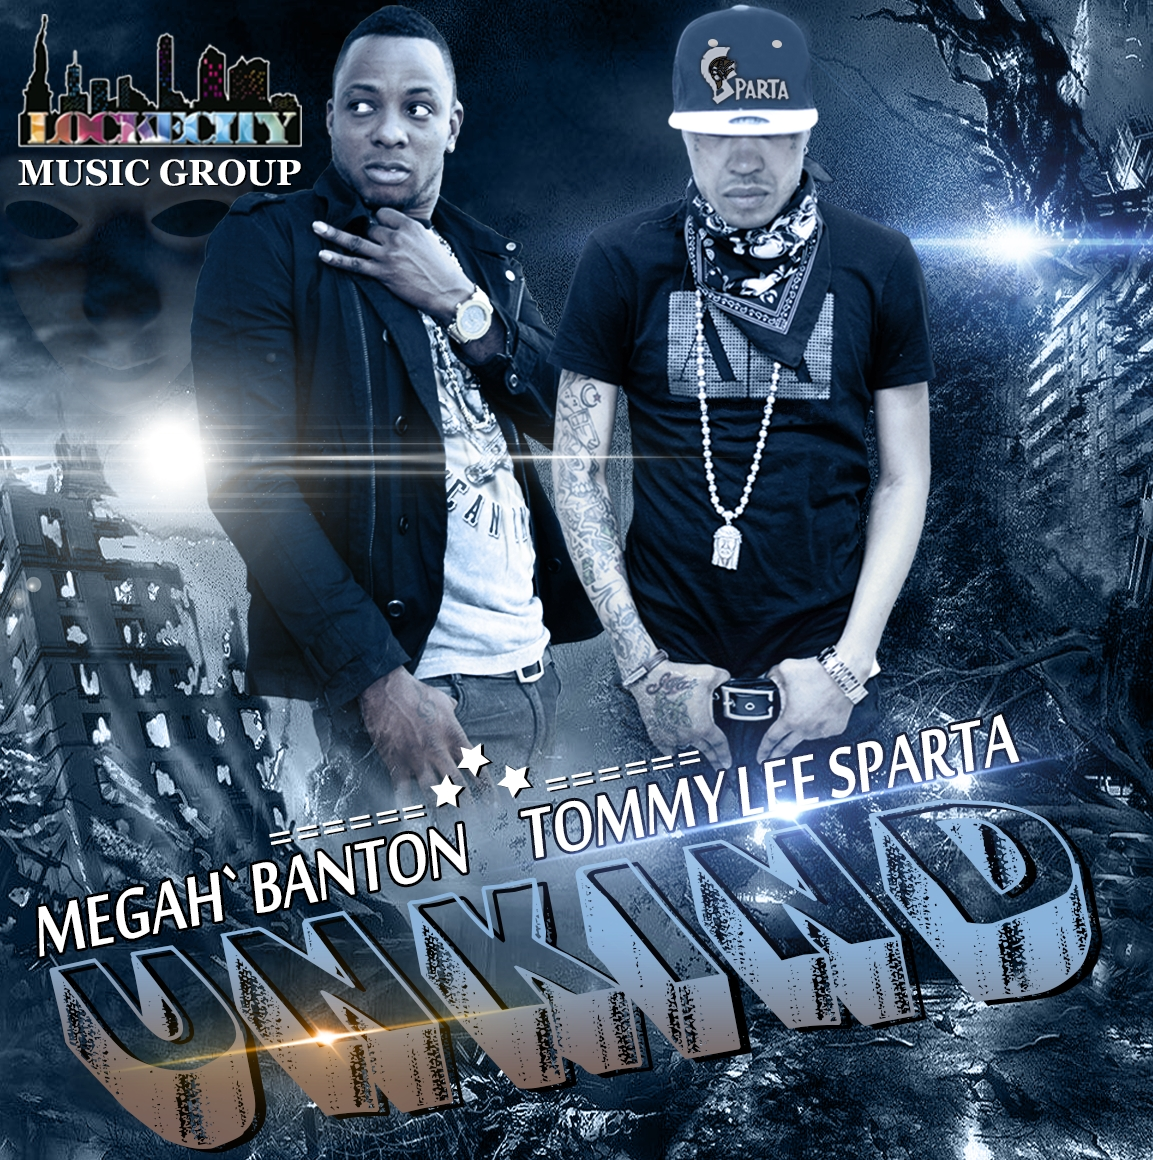 TOMMY-LEE-AND-MEGAH-BANTON-UNKIND-LOCKECITY-MUSIC-GROUP-COVER